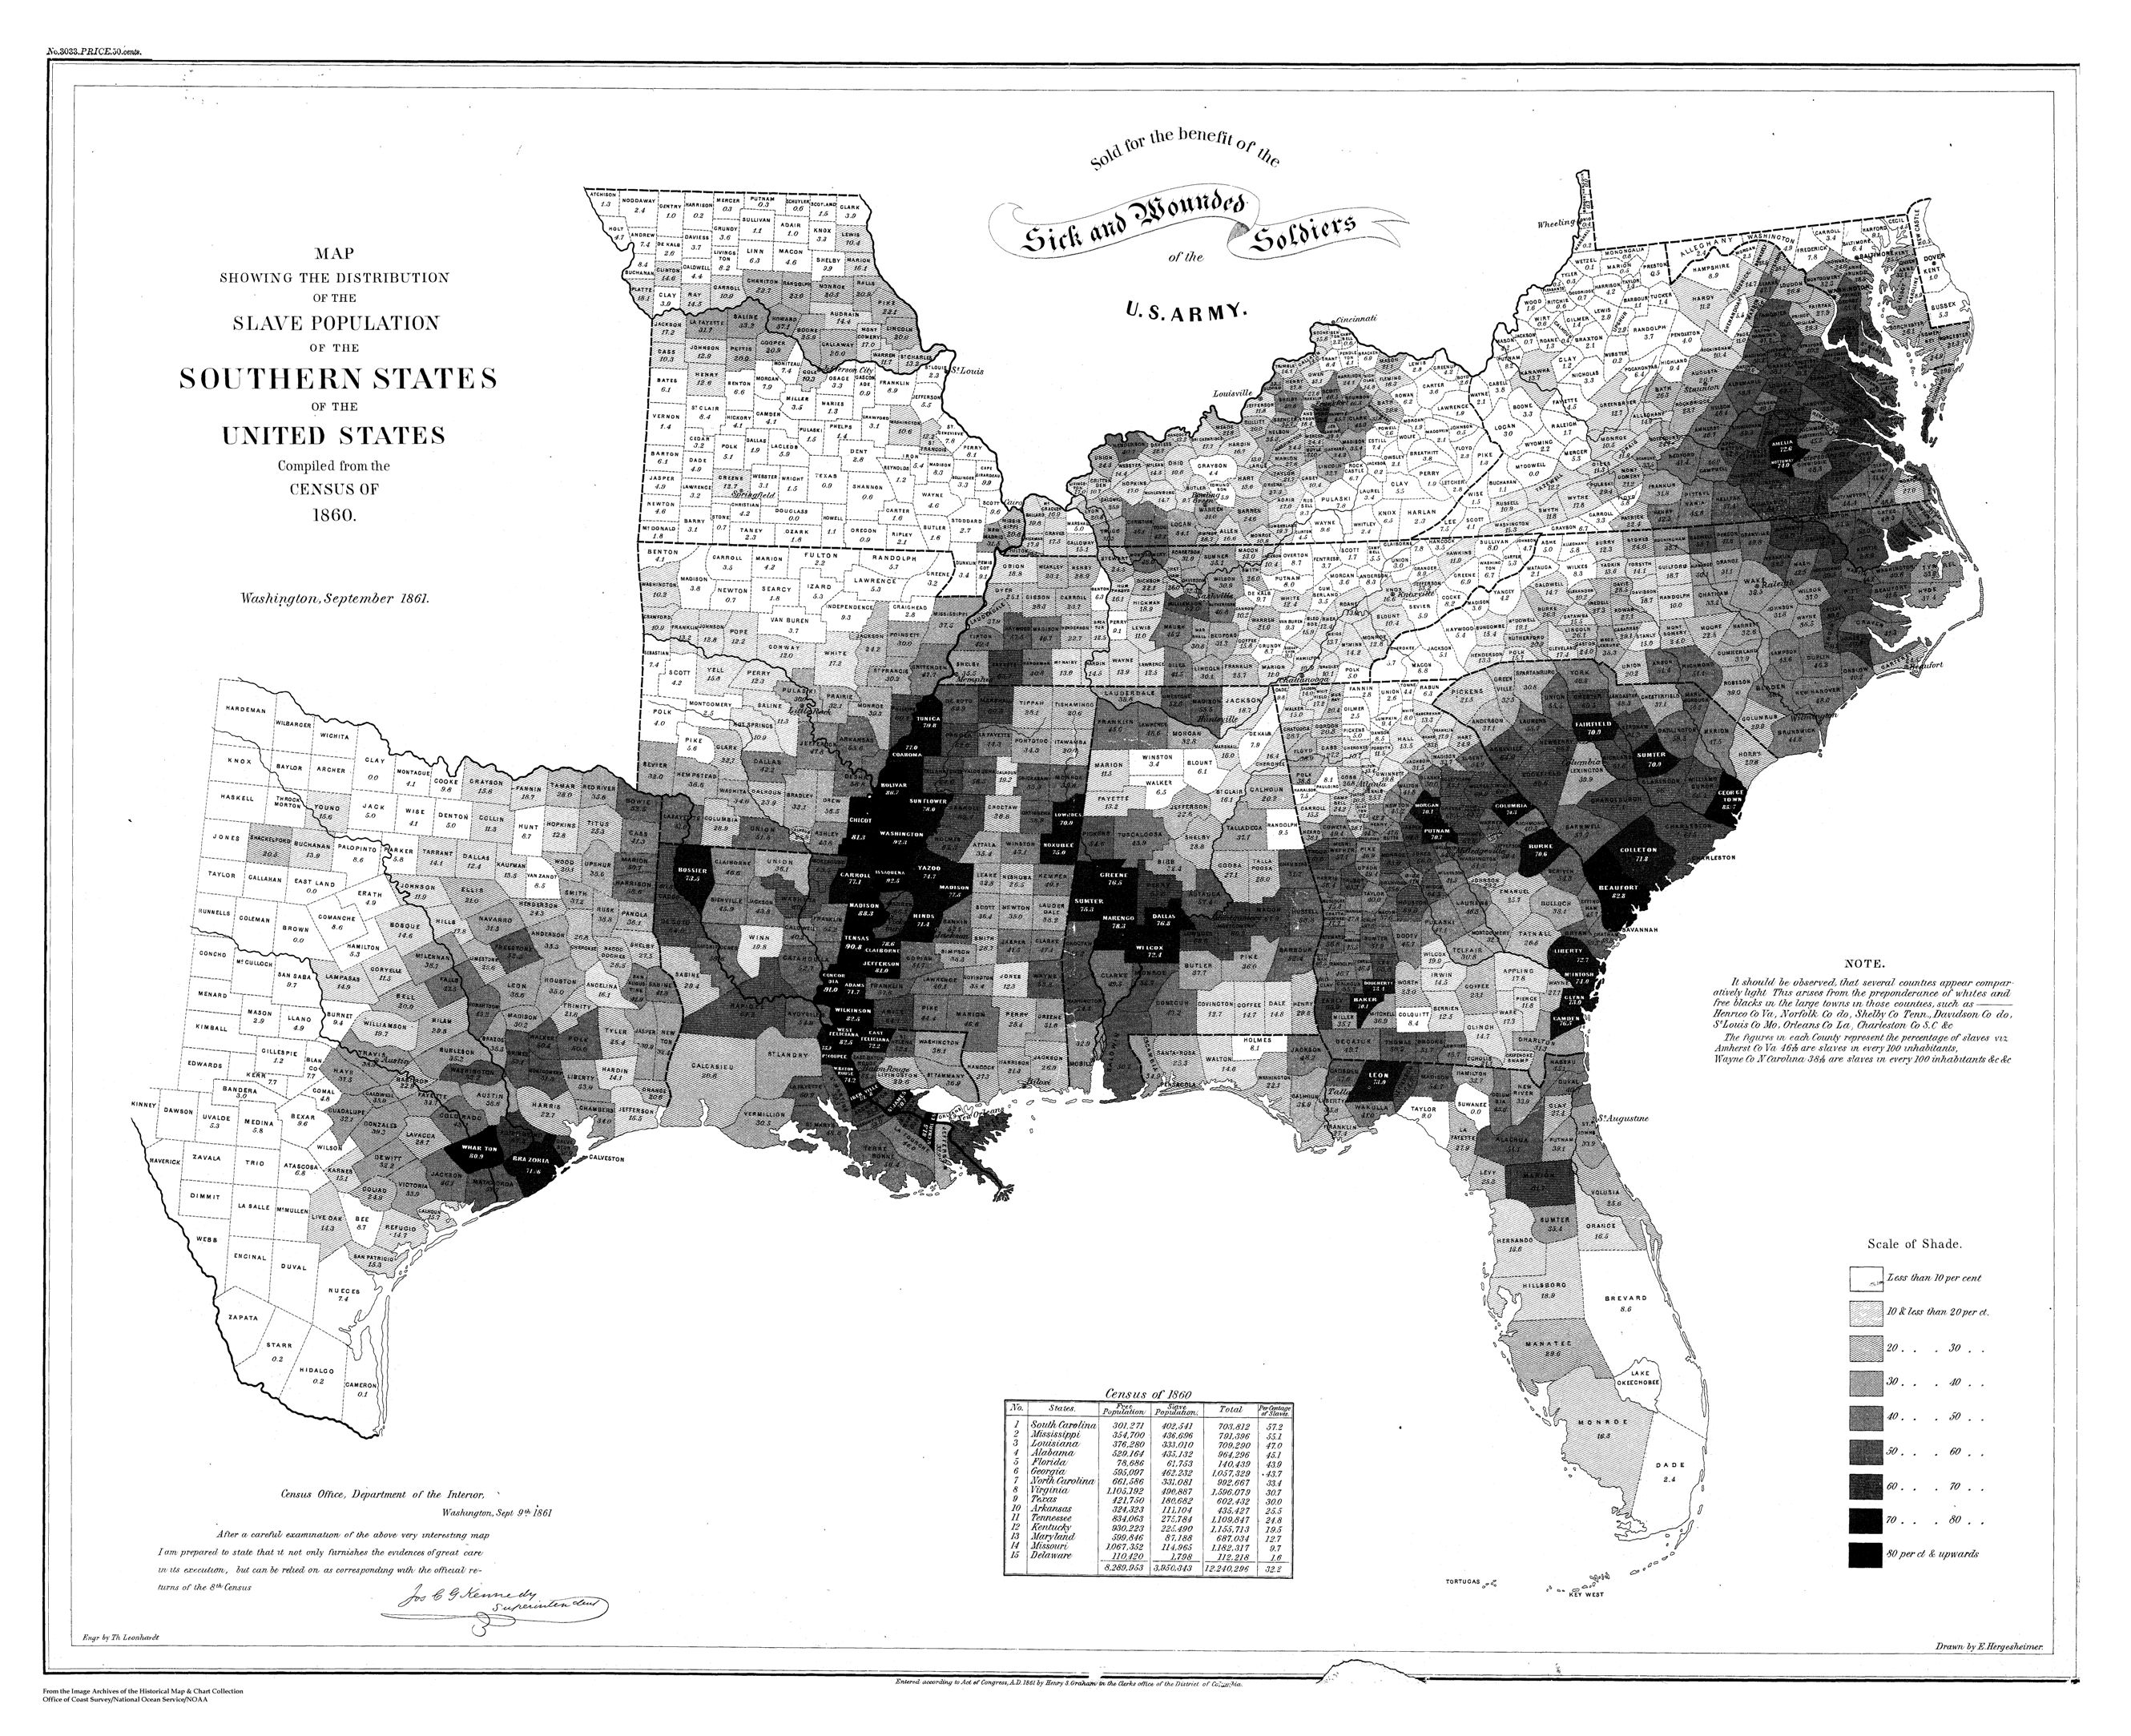 Noaa Civil War Collection Map Features Mapmaking Innovation